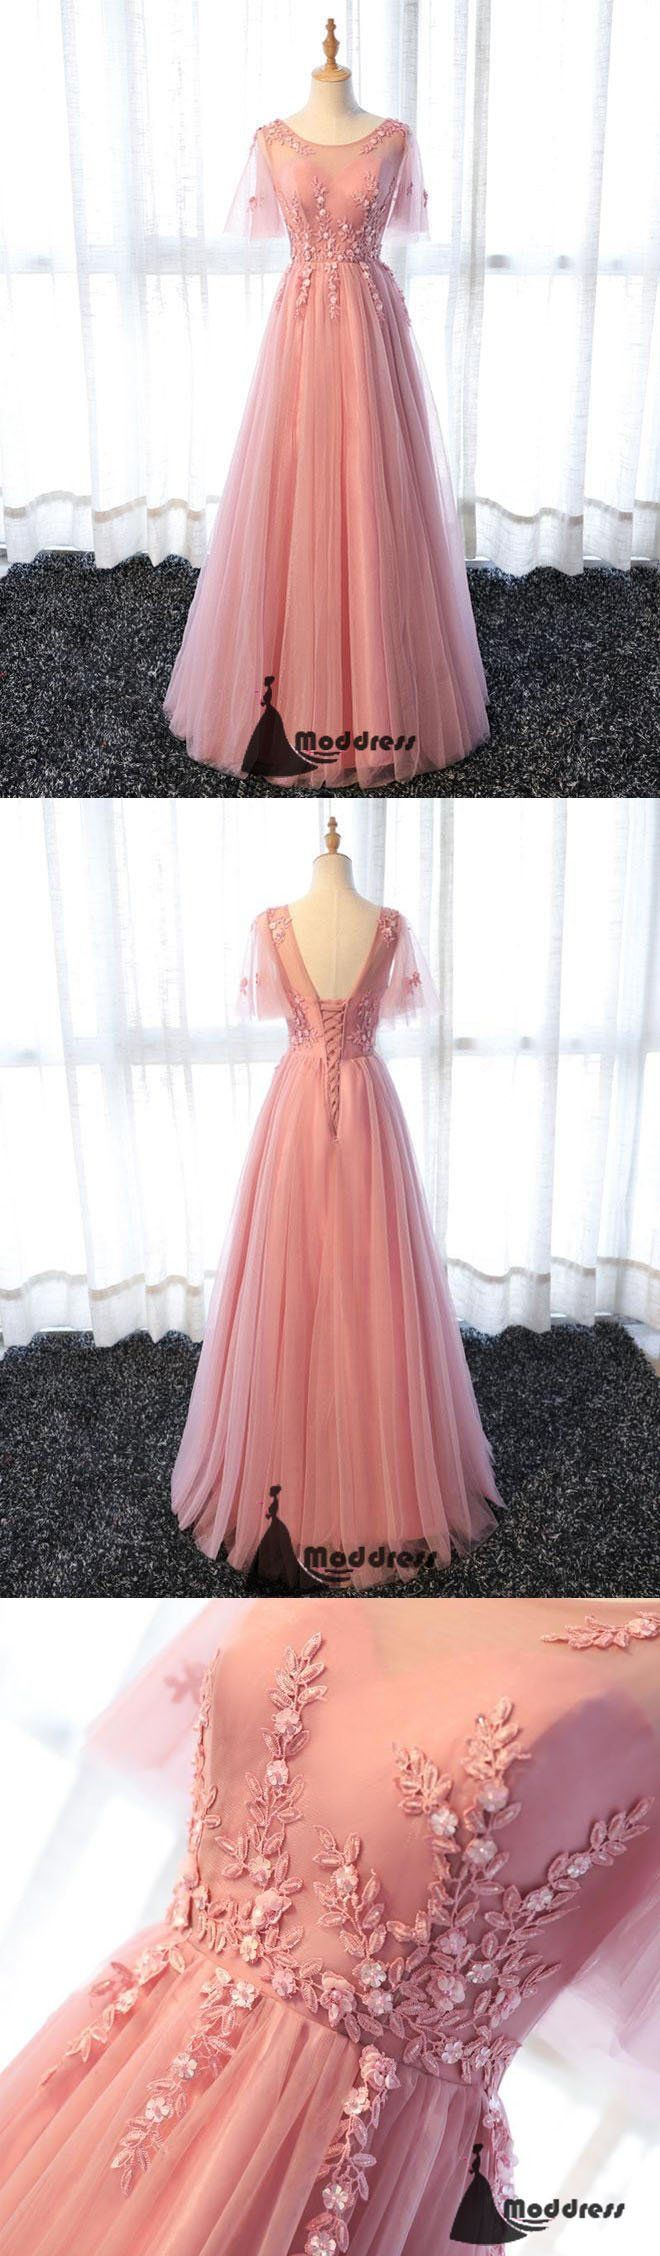 Pink Long Prom Dress Applique Evening Dress A-Line Tulle Formal Dress,HS485  #fashion #shopping #promdresses #eveningdresses #prom #dresses